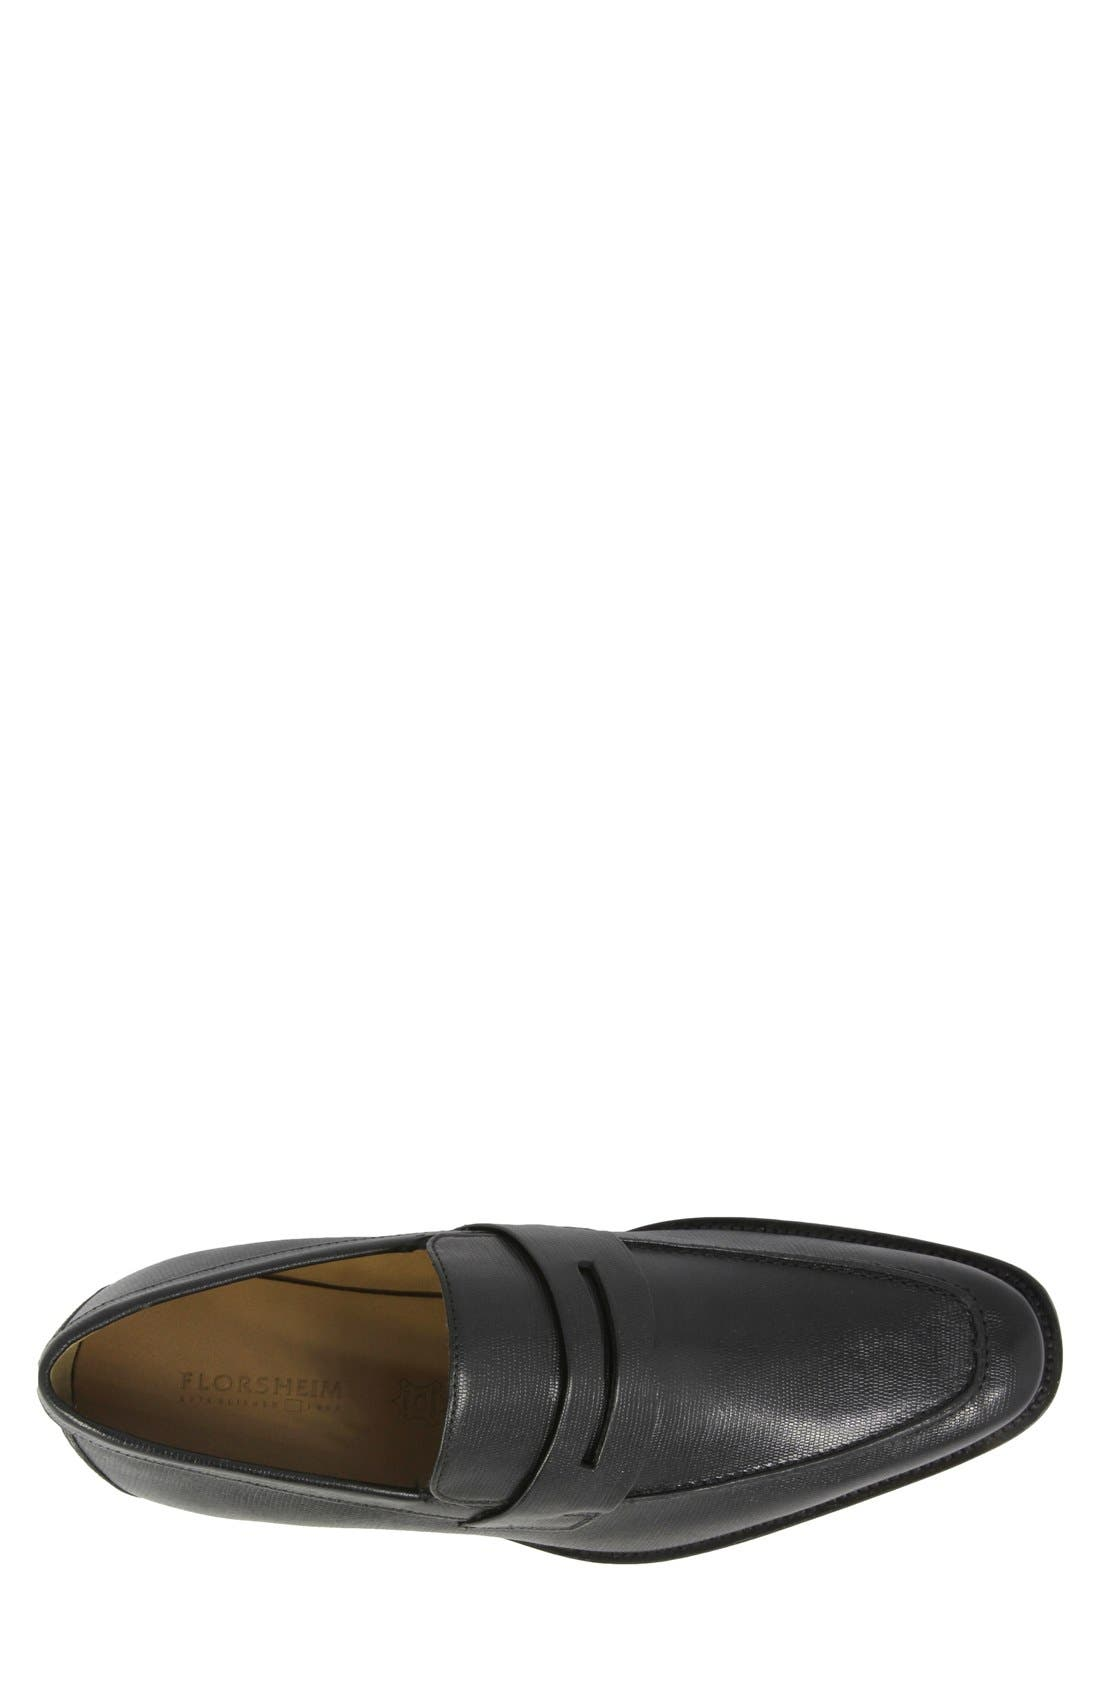 'Sabato' Penny Loafer,                             Alternate thumbnail 3, color,                             001